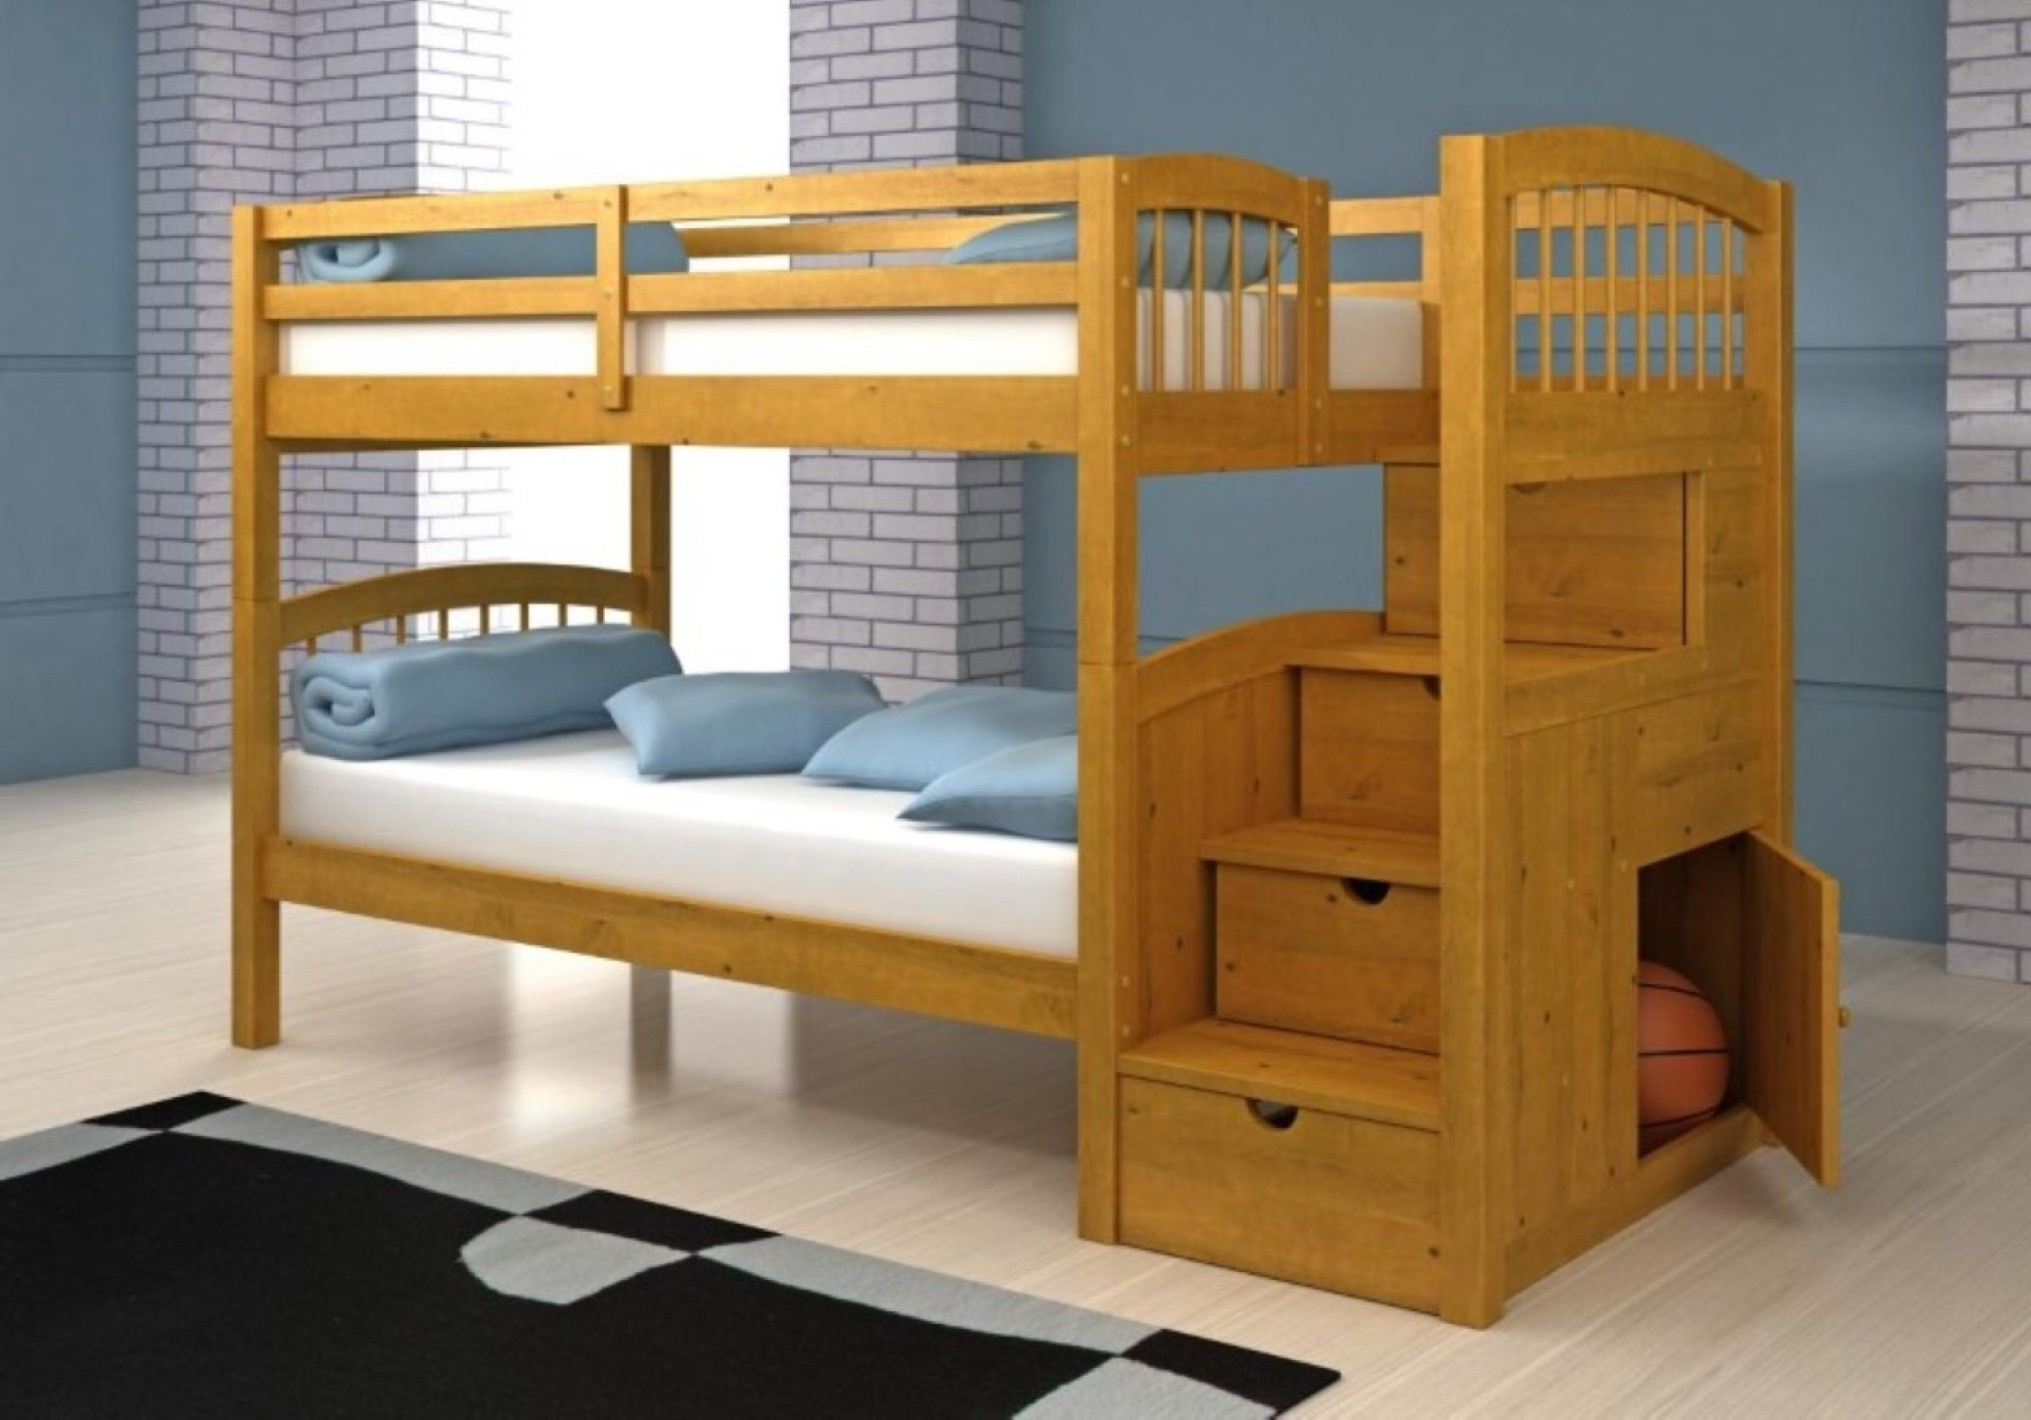 Pretty Bedroom Wall Idea And Laminate Floor Design Feat Modern Wood Bunk Bed With Modern Stairs (Image 17 of 28)